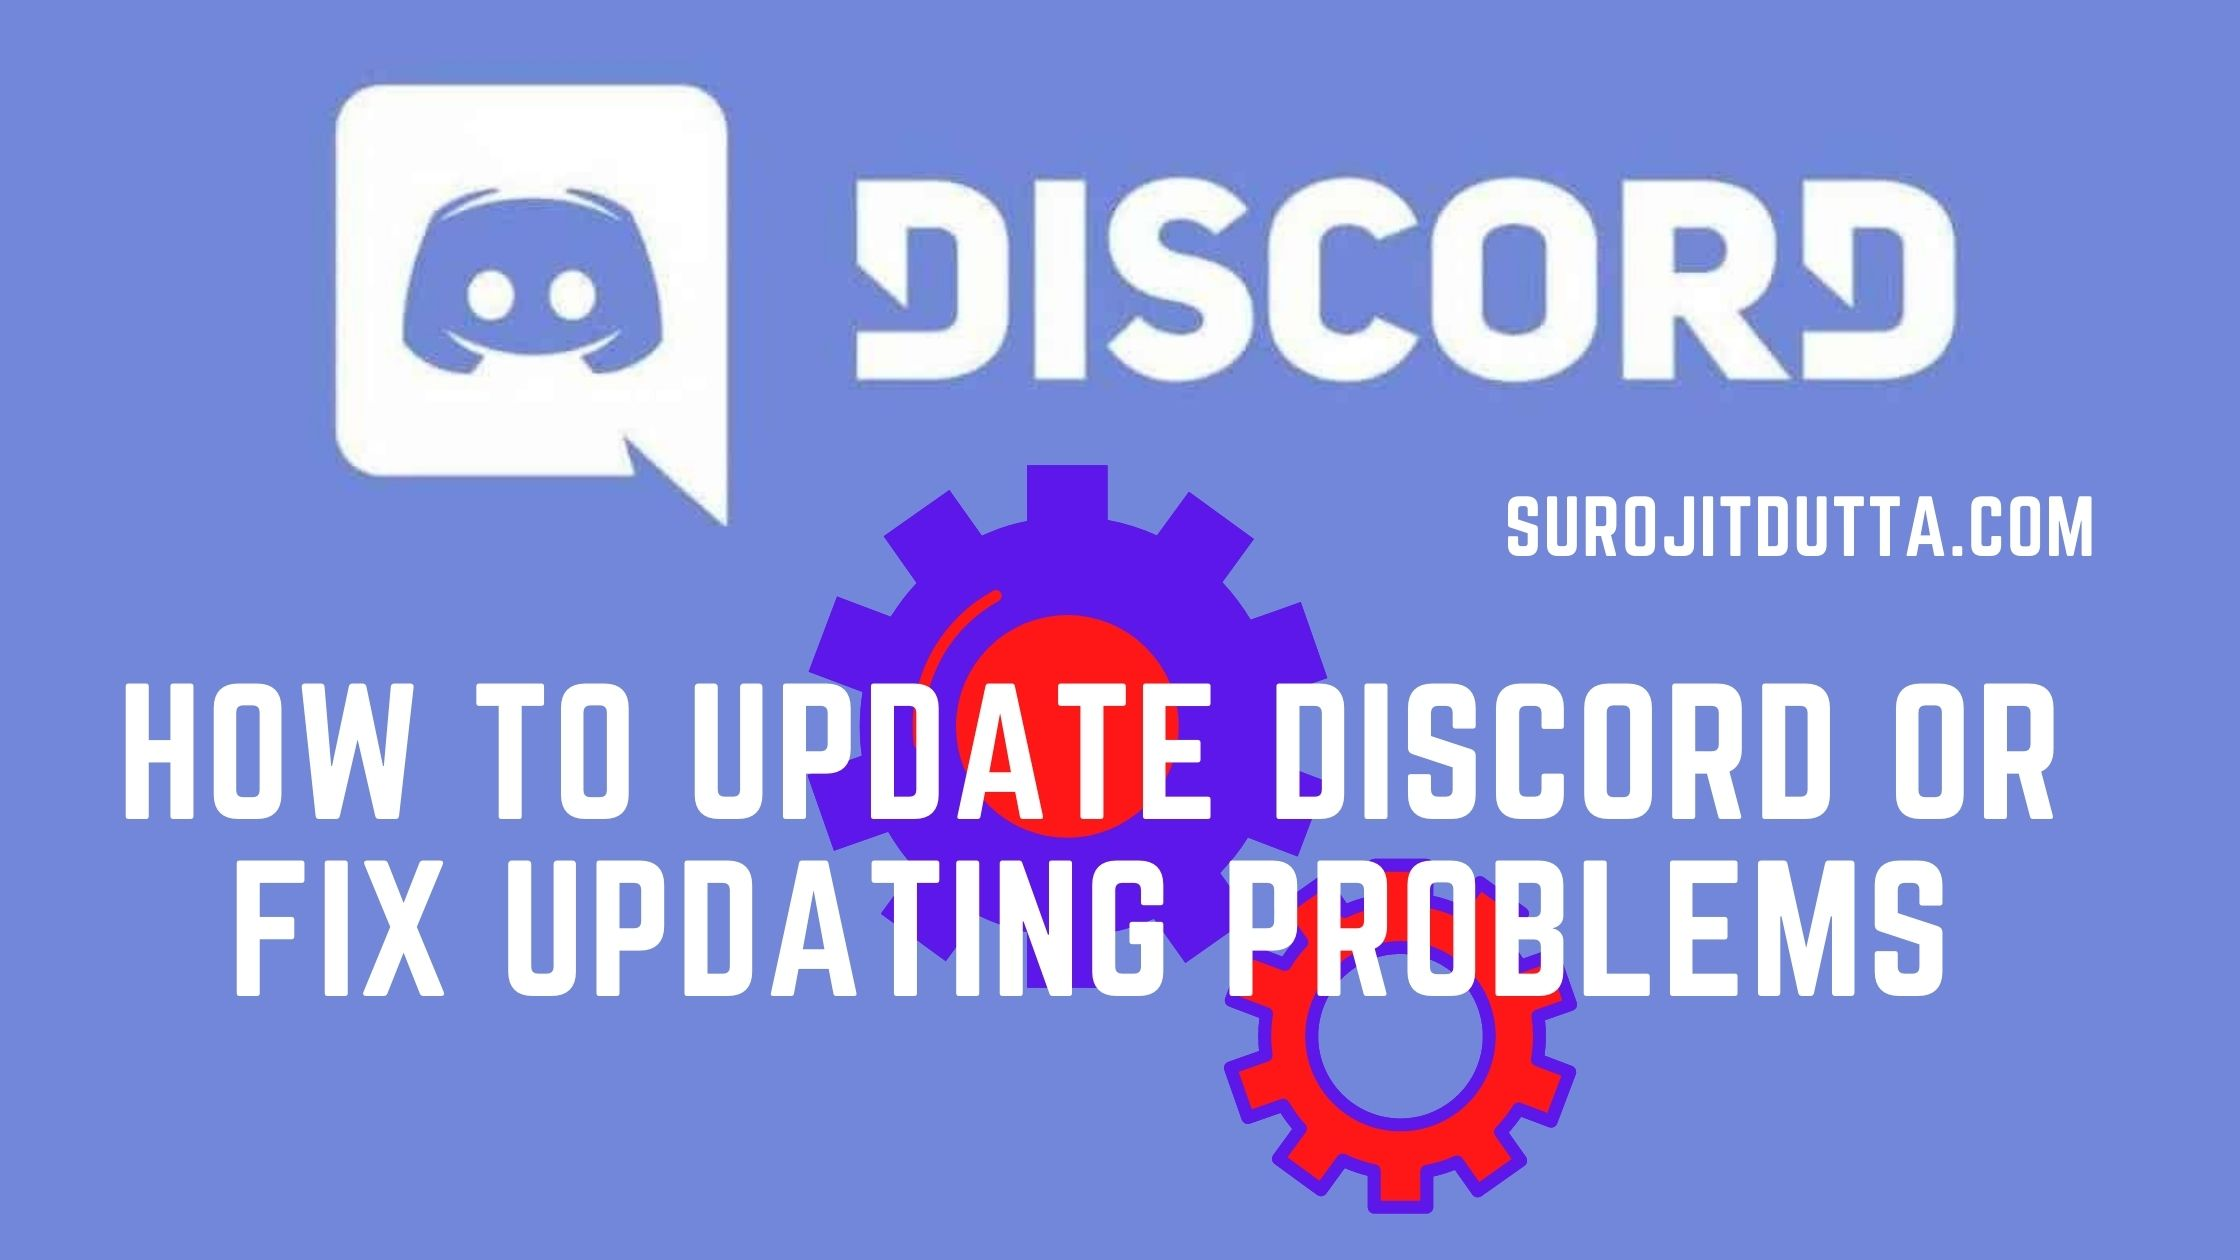 How To Update Discord Or Fix Discord Updating Problems